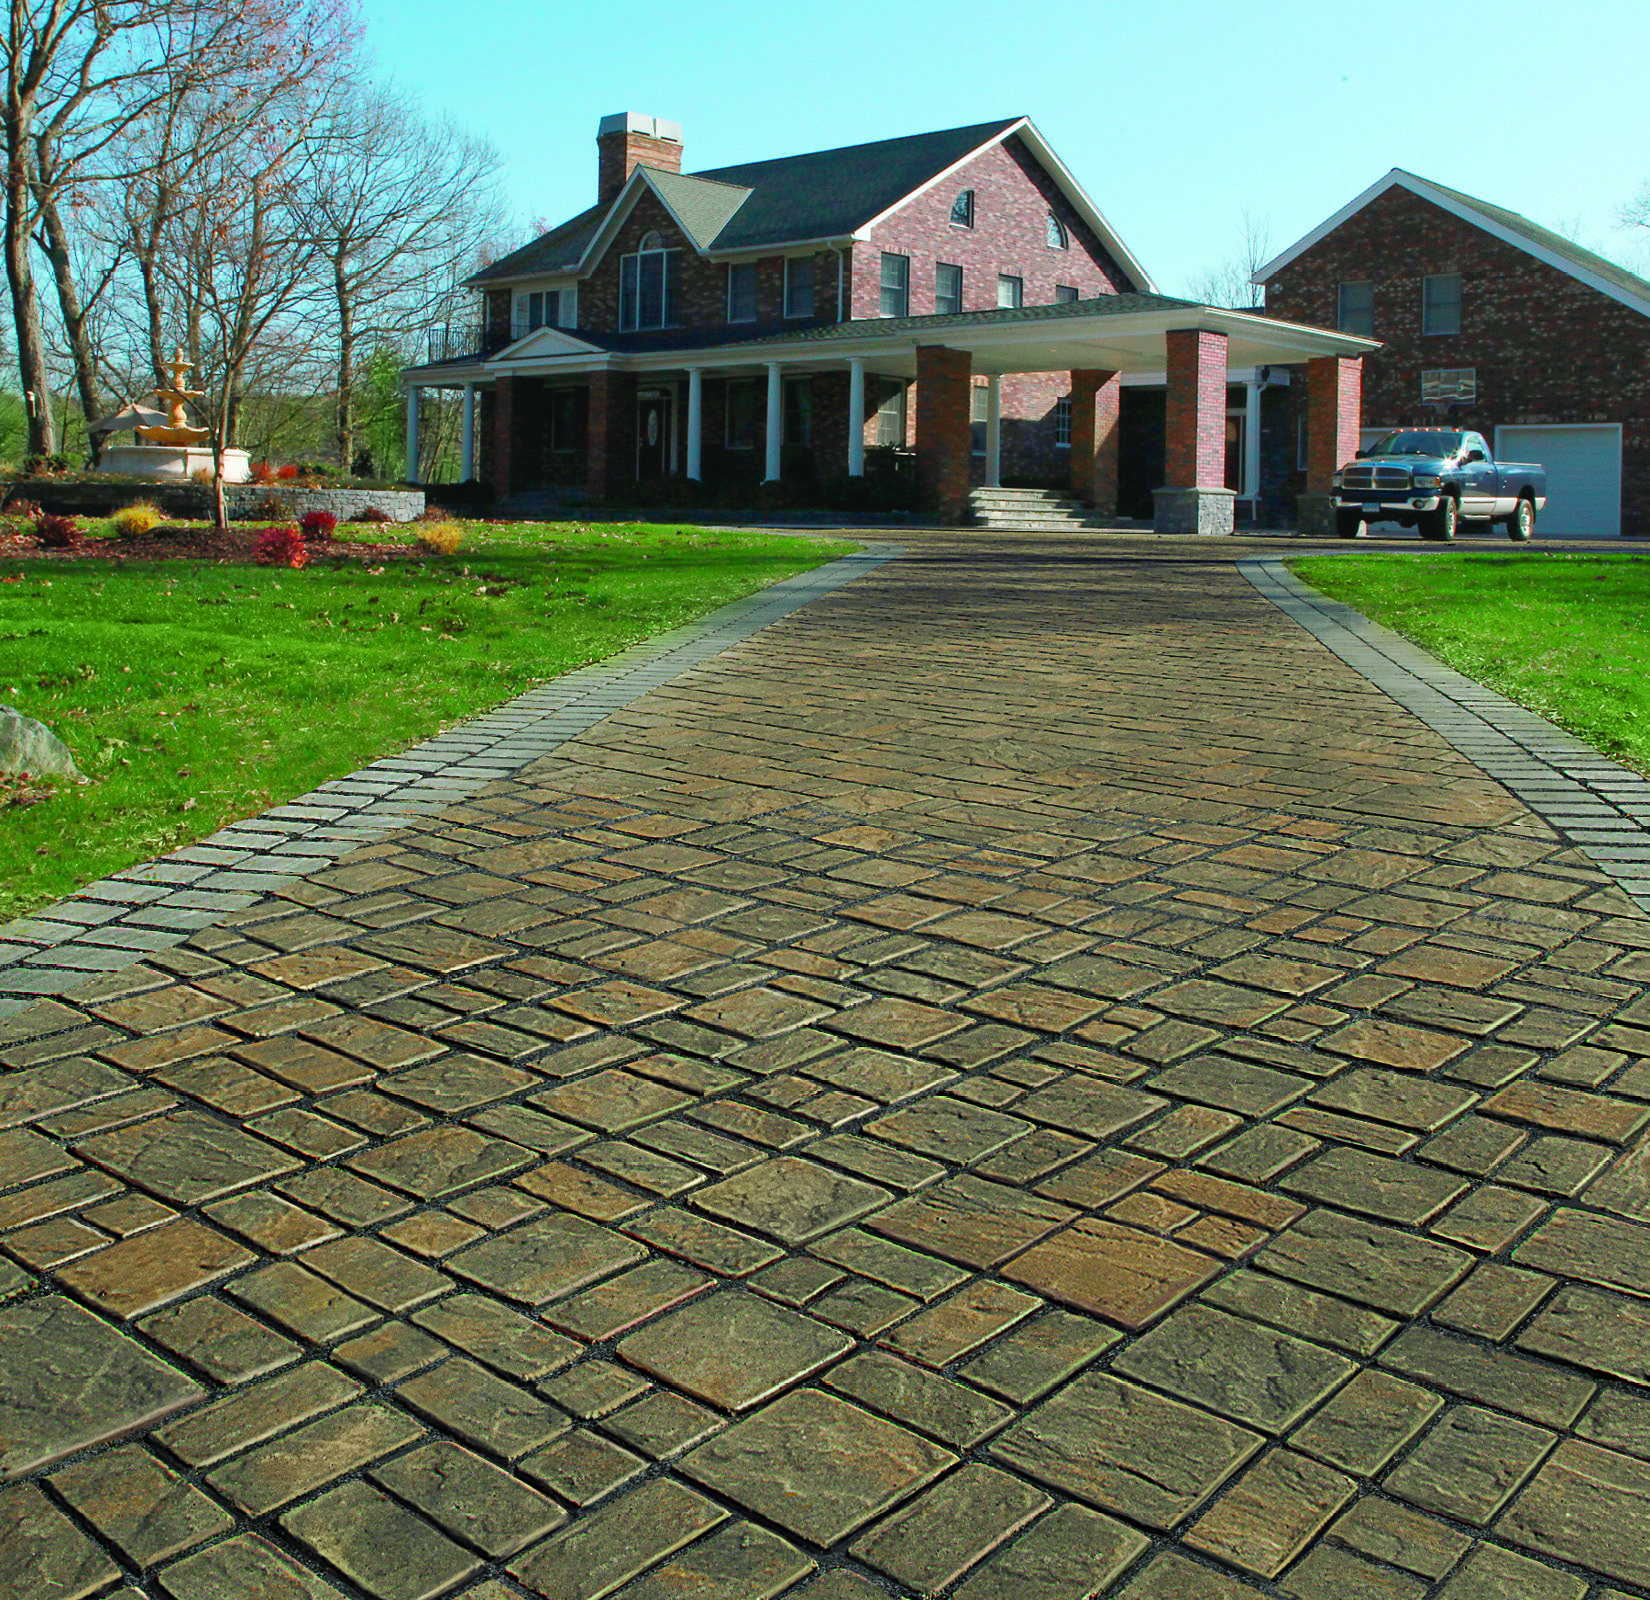 Cambridge pavingstones wall systems color options - Cambridge Pavingstones Pavingstone Systems The Crusader Collection